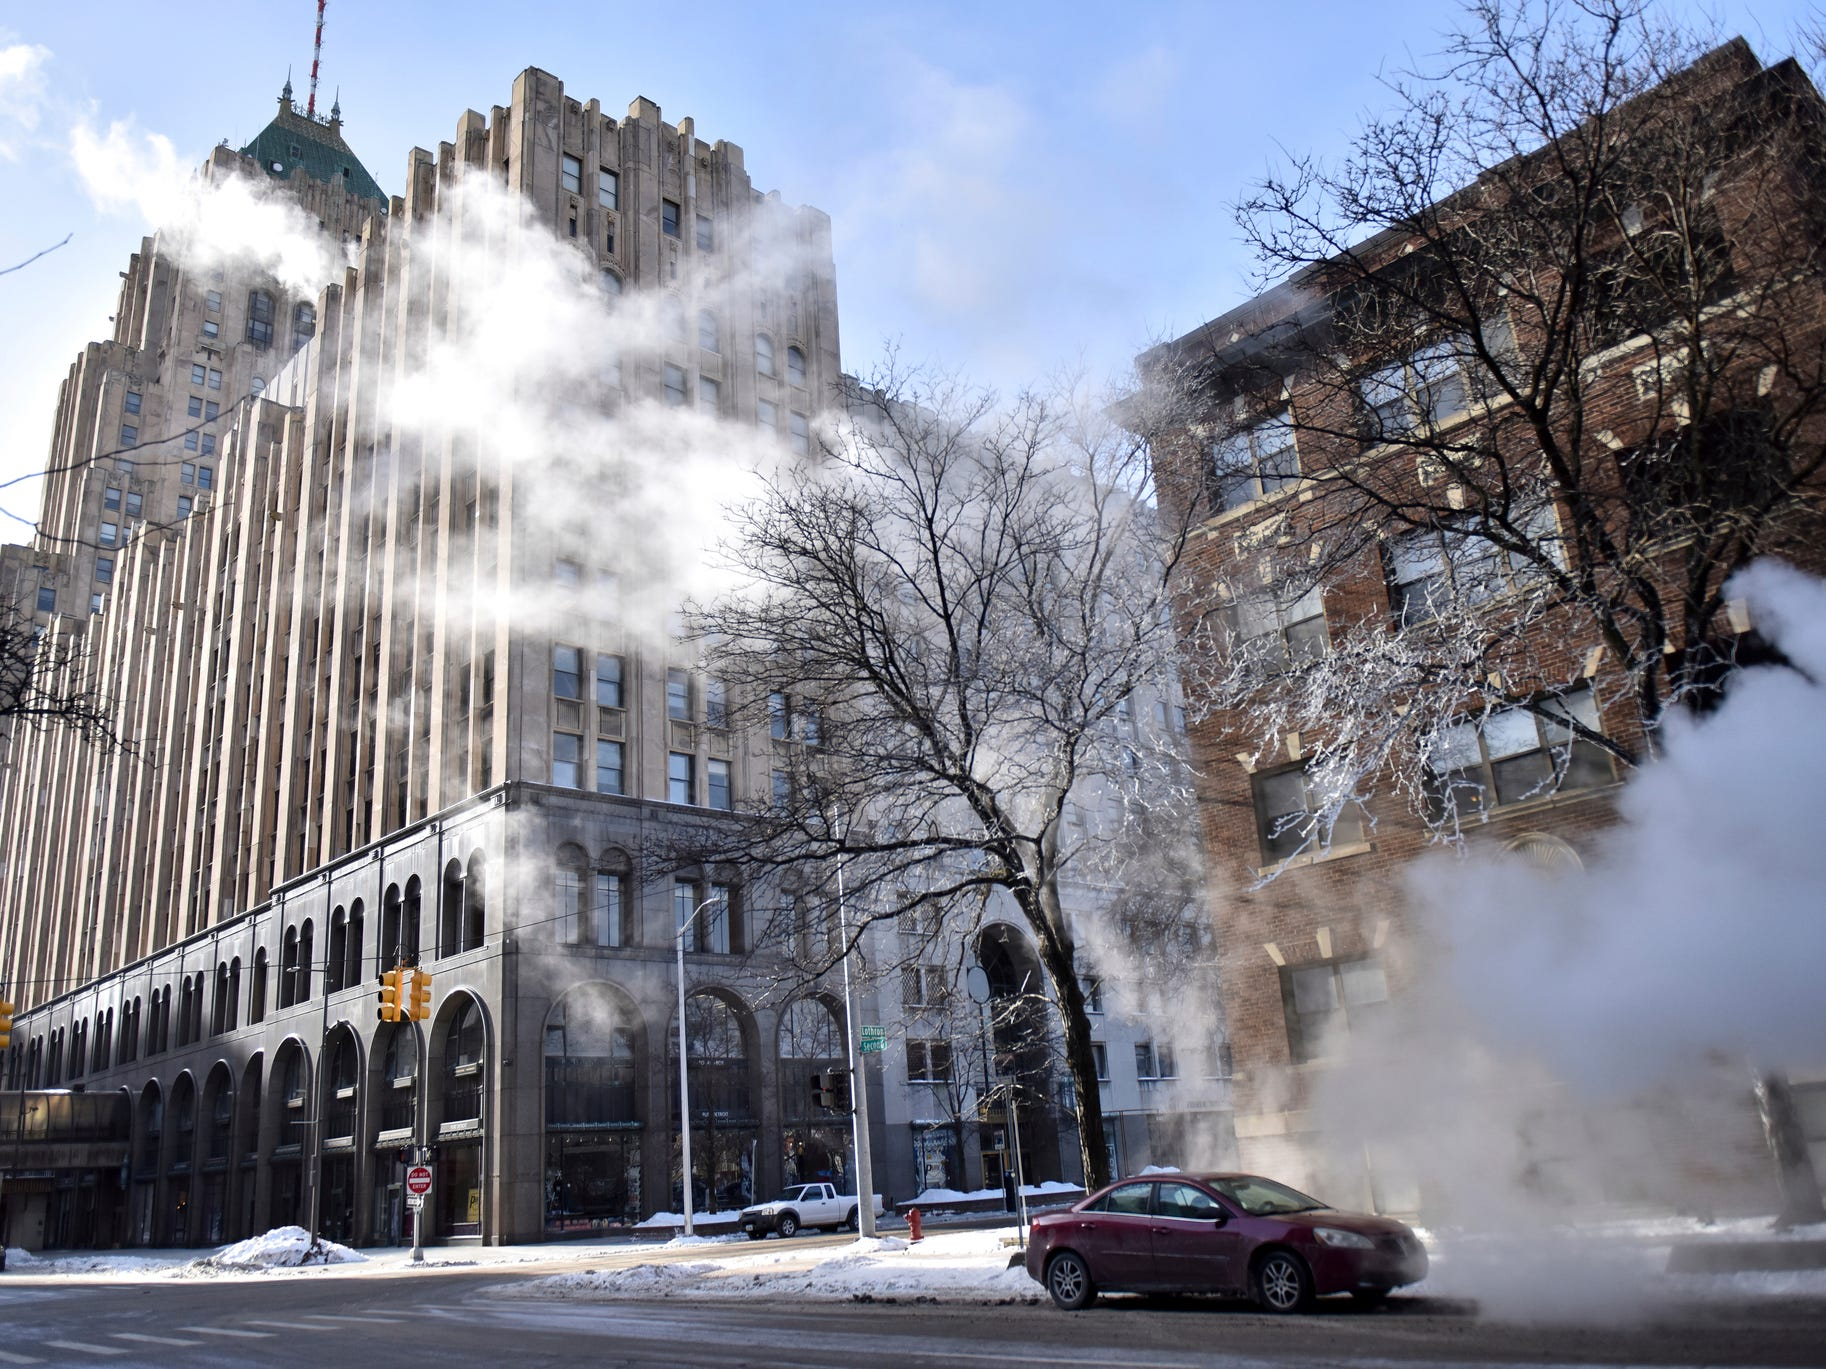 Wind gusts send steam through Detroit's New Center area Wednesday.